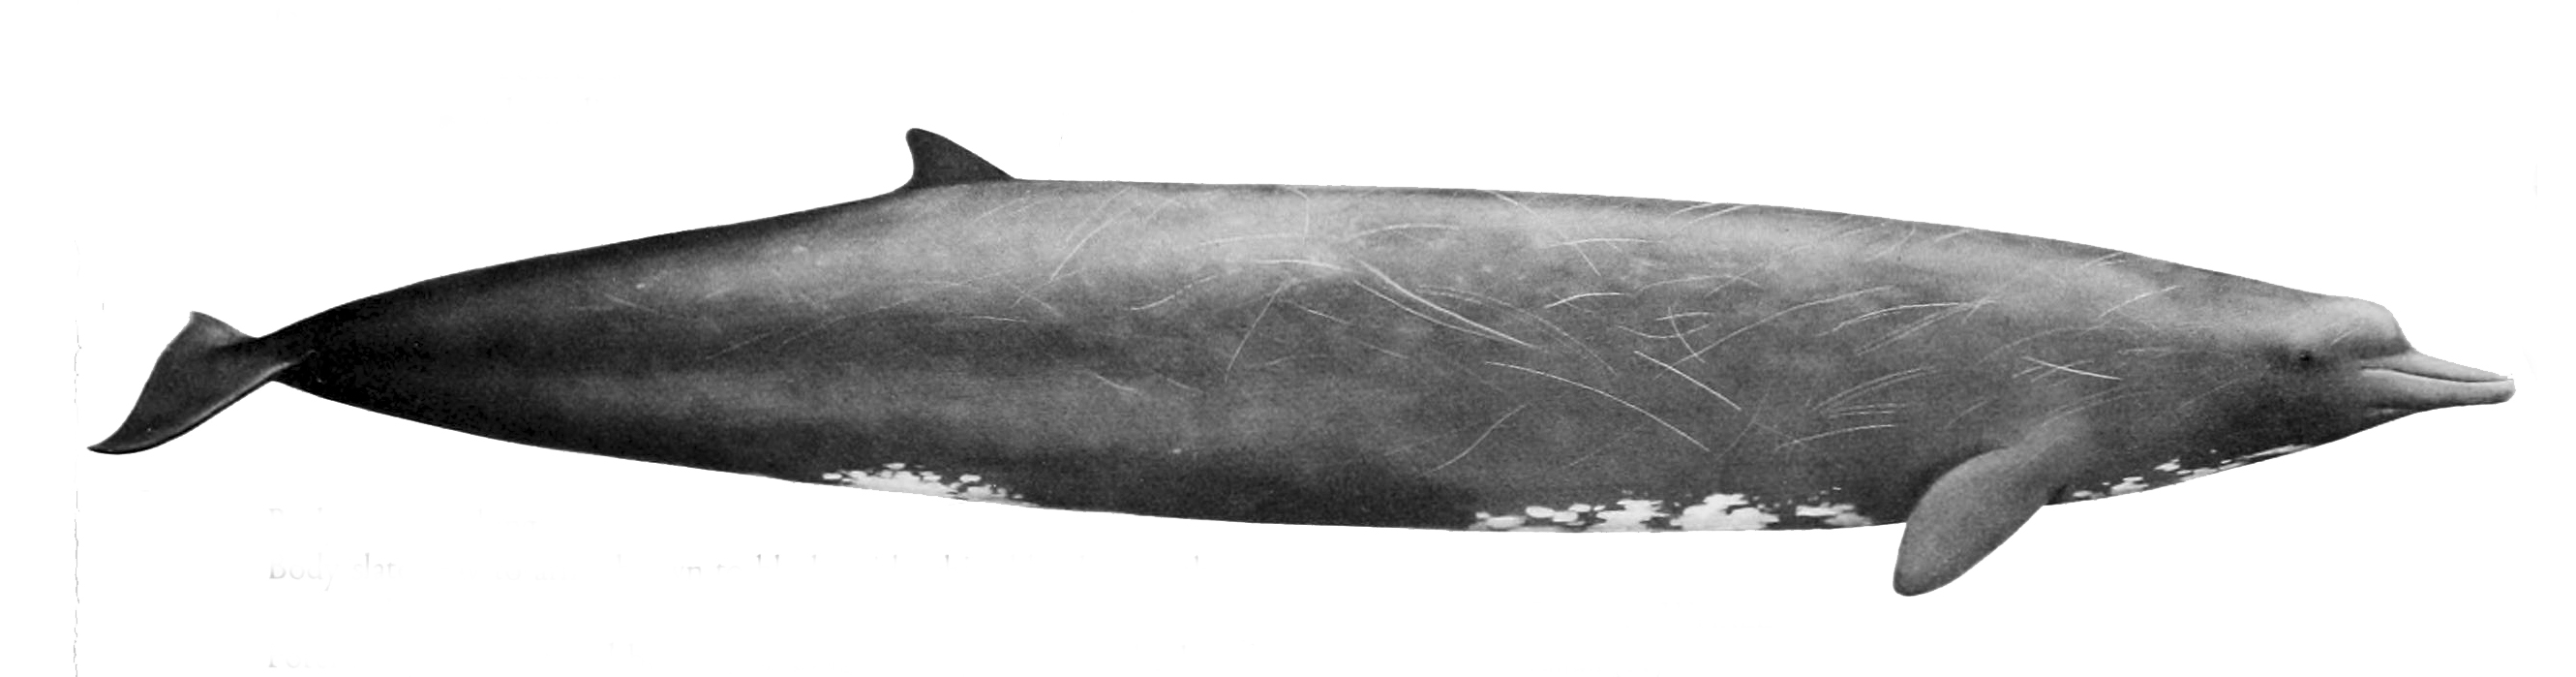 According to the National Oceanic and Atmospheric Administration (NOAA), Baird's beaked whales are capable of diving to depths of 9,840 feet (3,000 meters).